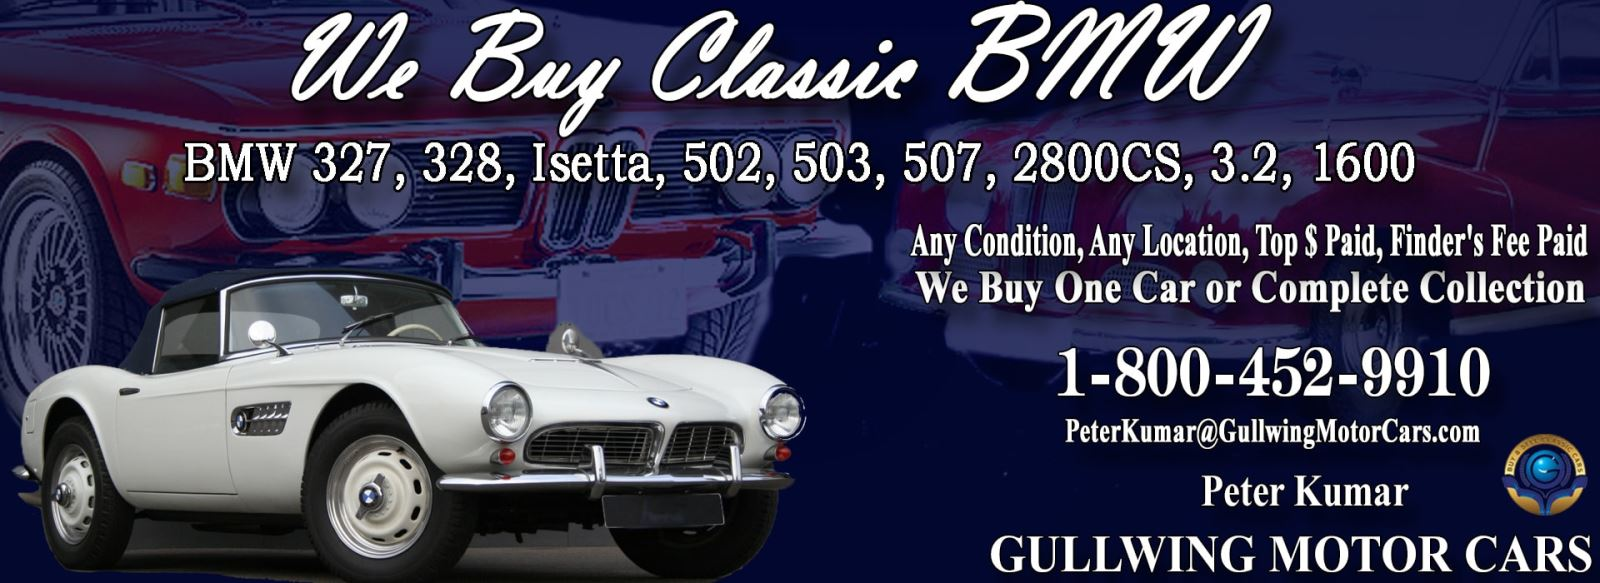 Classic BMW for sale, we buy vintage BMW. Call Peter Kumar. Gullwing Motor